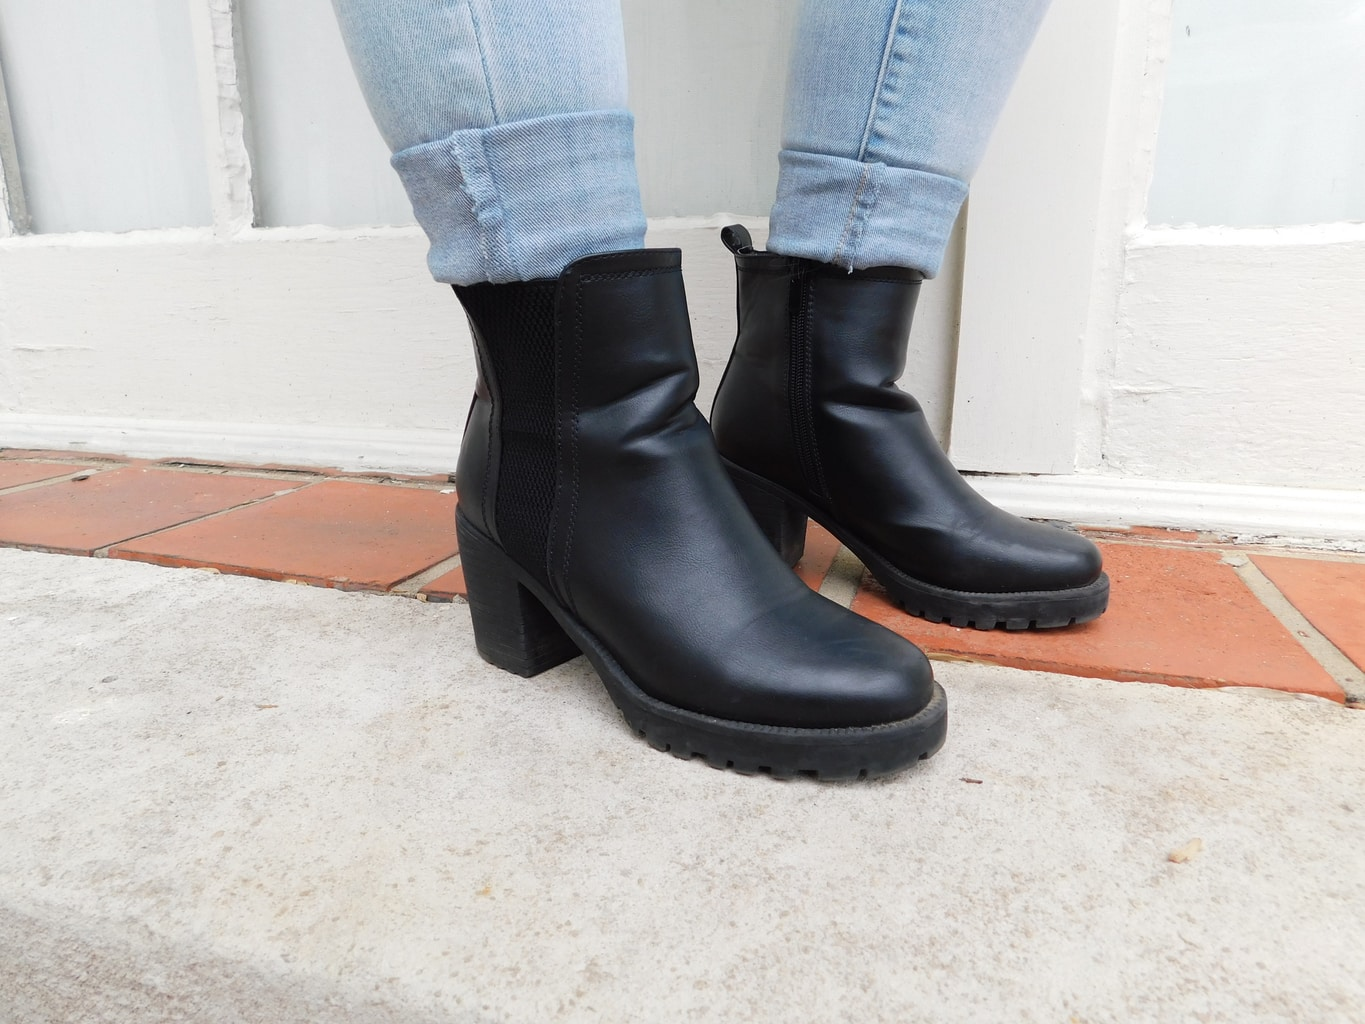 These black, chunky-heeled, rain boot style booties are a staple in Jackie's wardrobe.